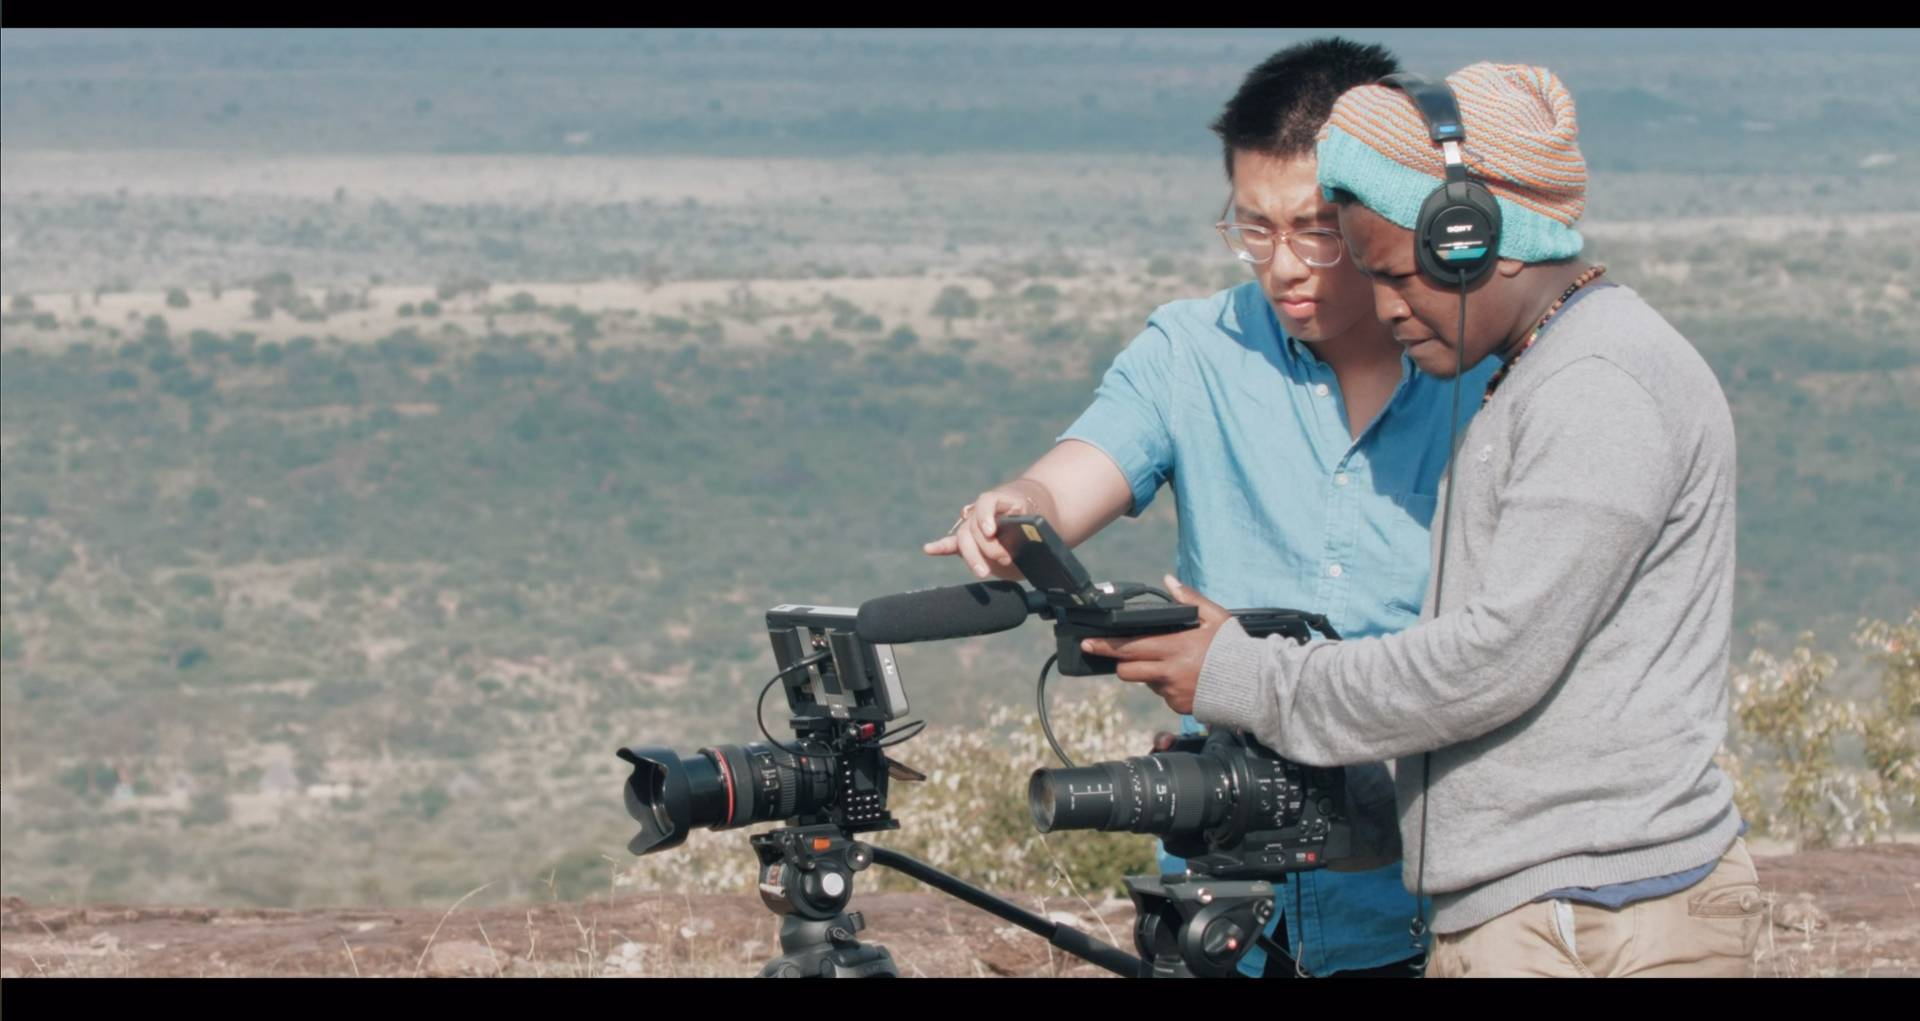 """Students in the Global Seminar """"Documentary Filmmaking in Kenya: Visual Storytelling on Wildlife and Wildlands Conservation"""" made five short films as part of the summer course based at the Mpala Research Centre. Video still by Nicolas Chae, Ingrid Koester, Maende J, and Lauren Olson"""